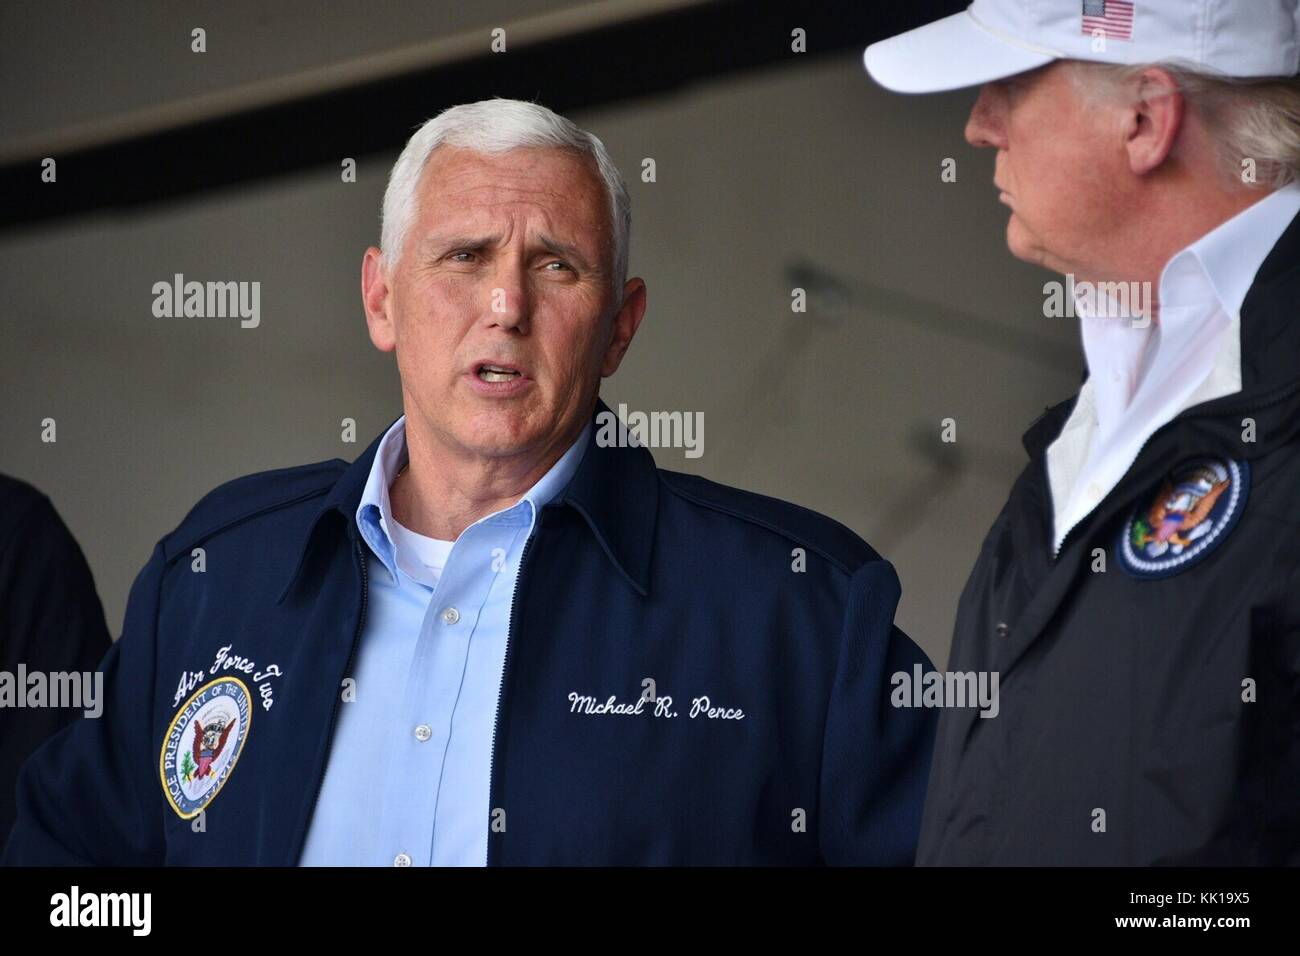 U.S. Vice President Mike Pence and U.S. President Donald Trump meet with U.S. Coast Guard officers after Hurricane - Stock Image